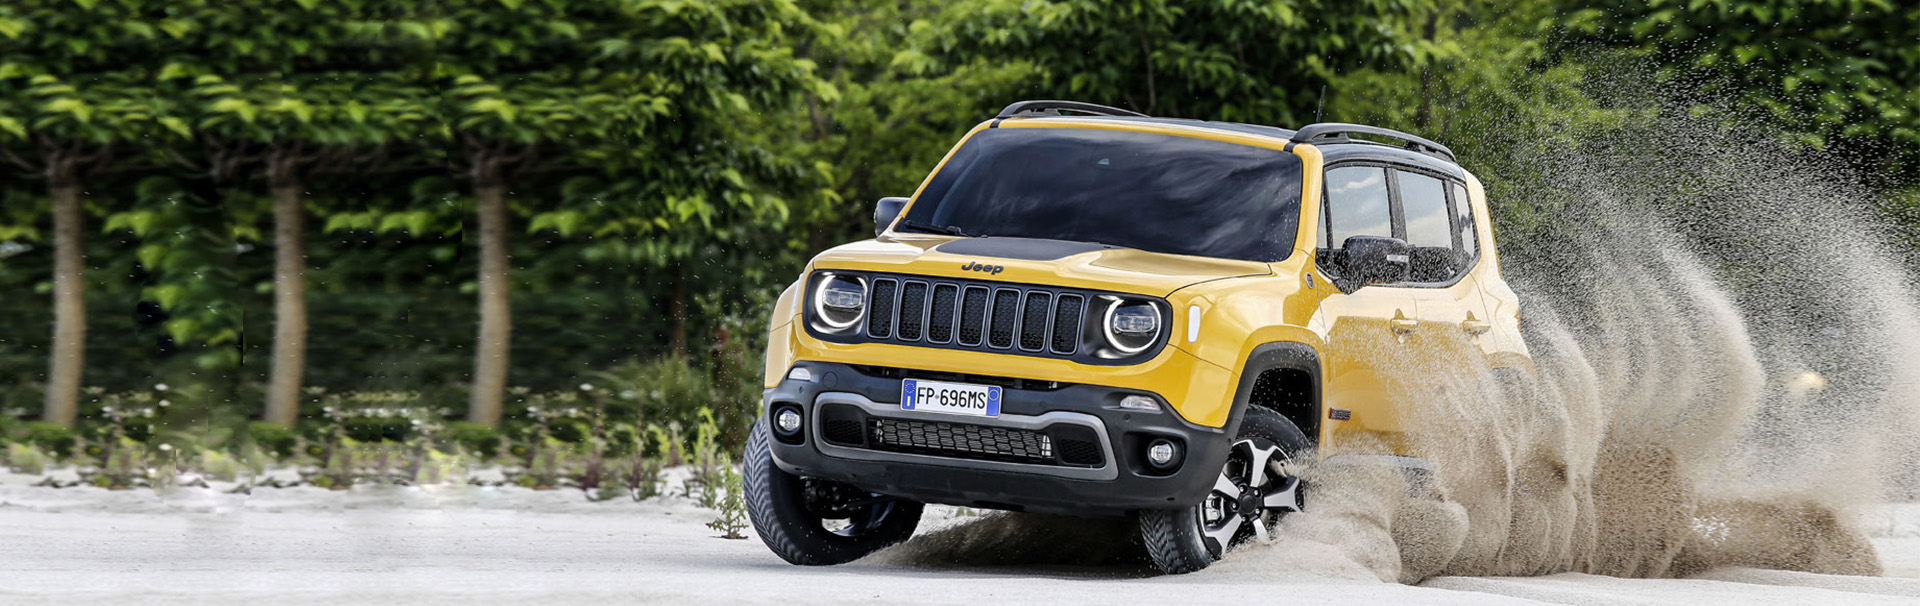 Jeep® Renegade - Performance - 4x4 par excellence (tabs)